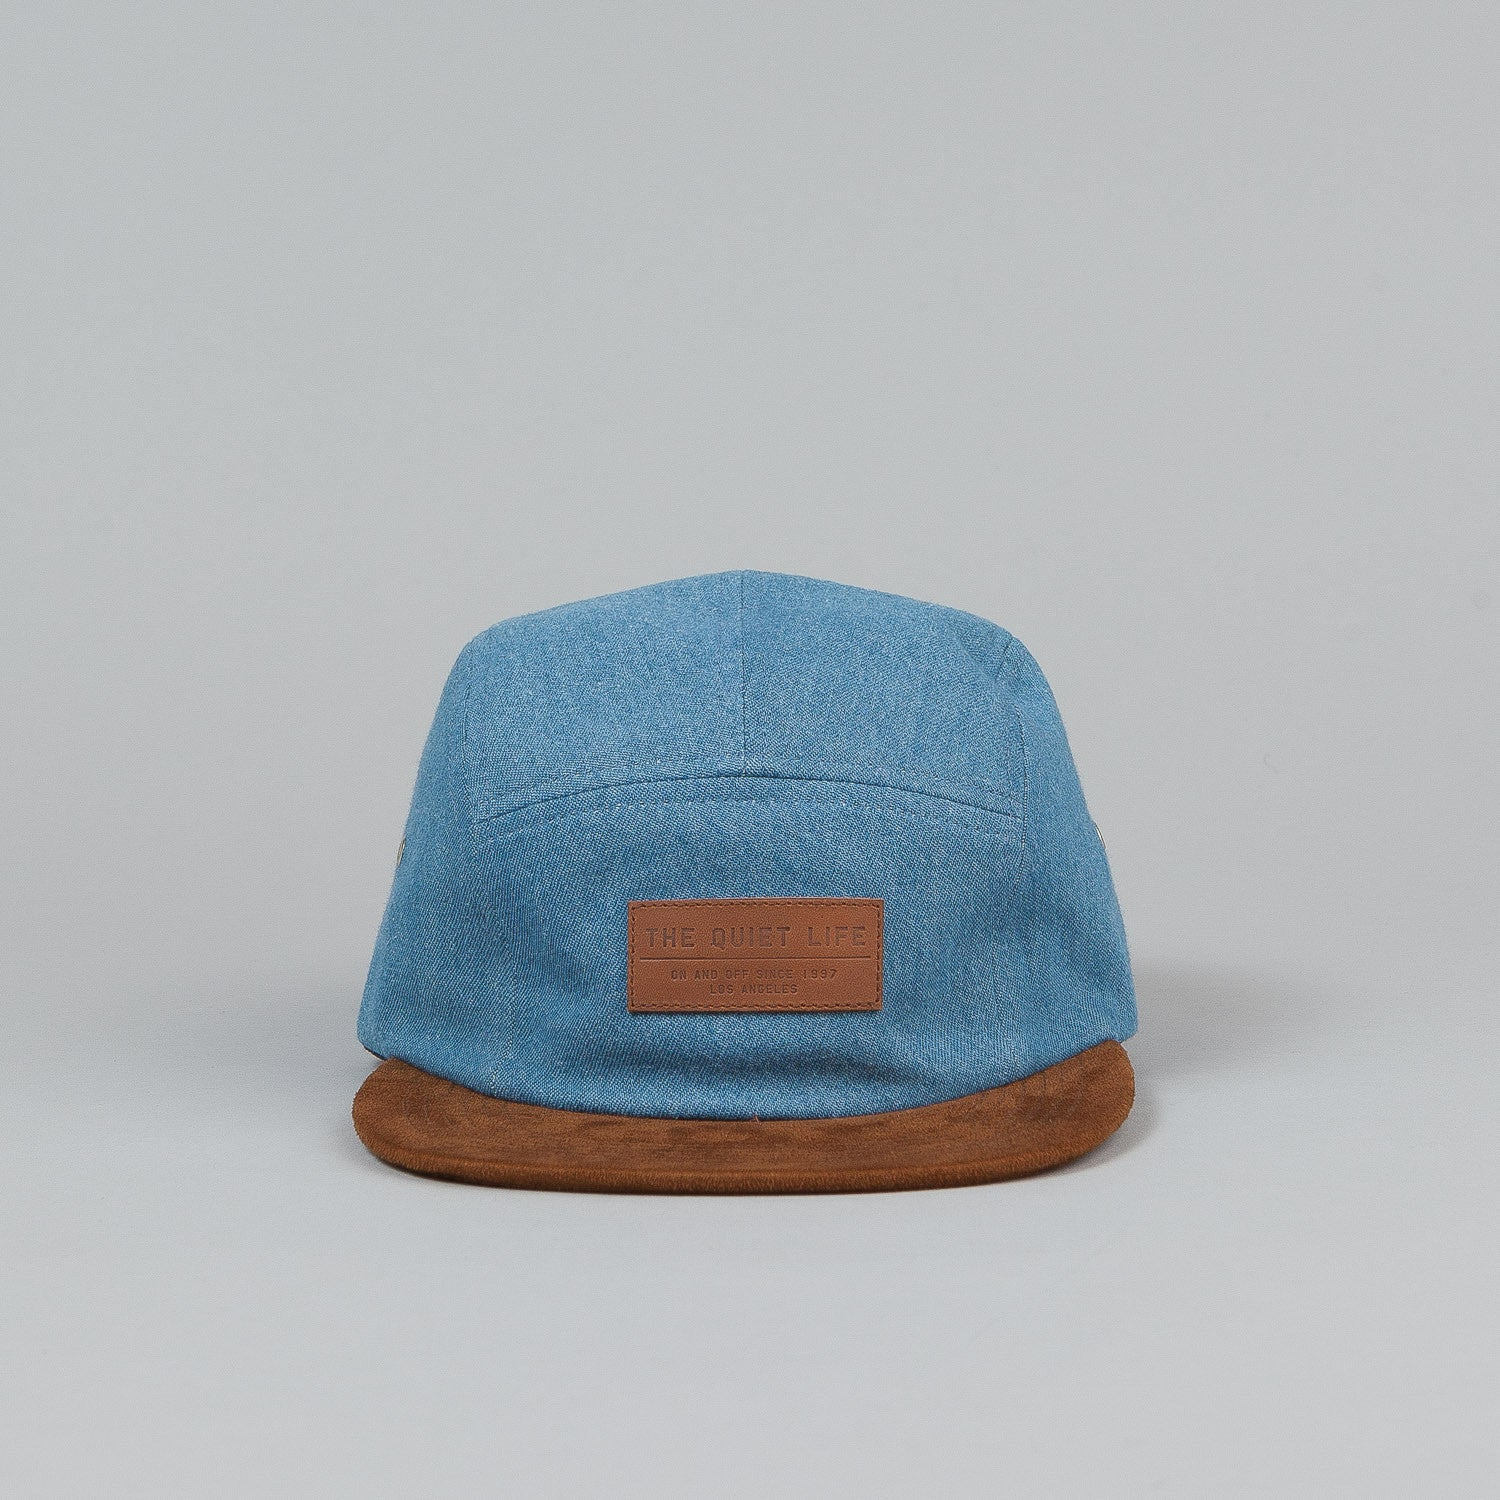 The Quiet Life Light Denim 5 Panel Cap - Denim